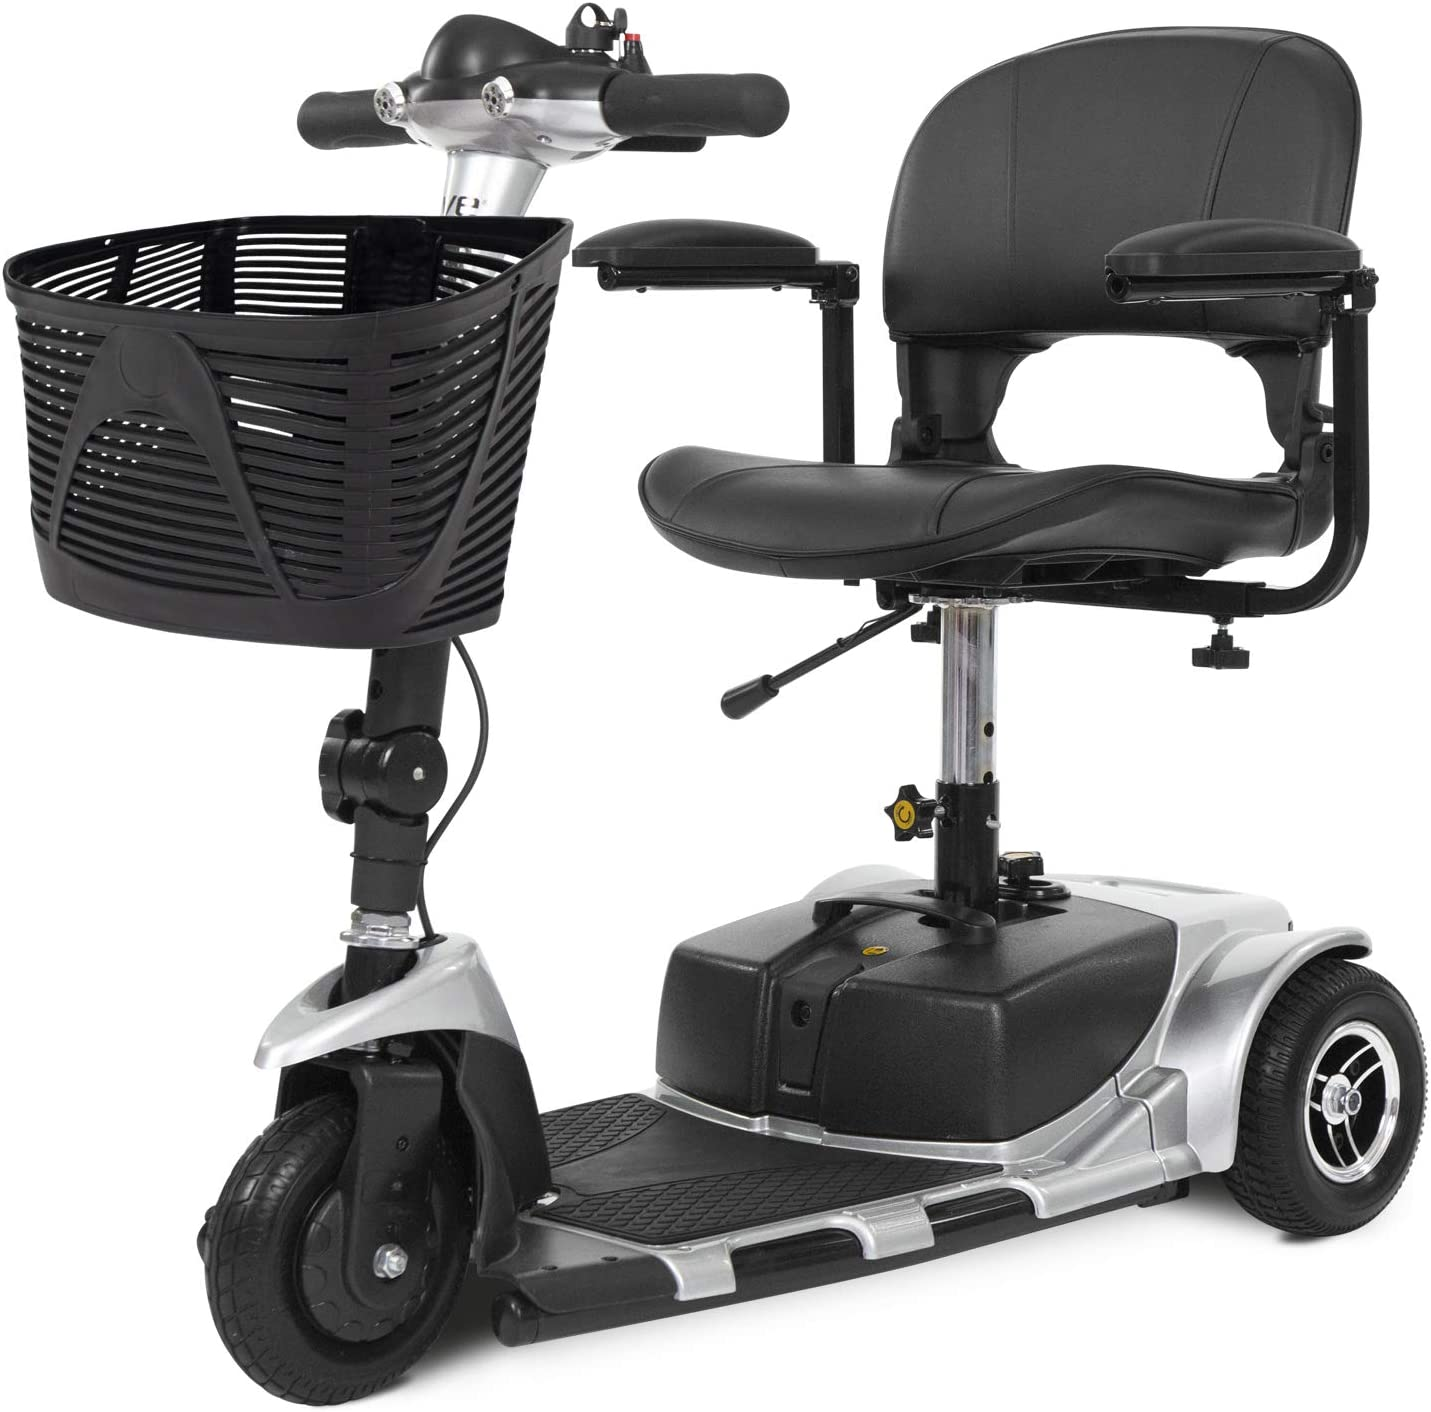 Vive 3-Wheel Mobility Scooter - Electric Powered Mobile Wheelchair Device for Adults - Folding, Collapsible and Compact for Travel - Long Range Power Extended Battery with Charger and Basket Included